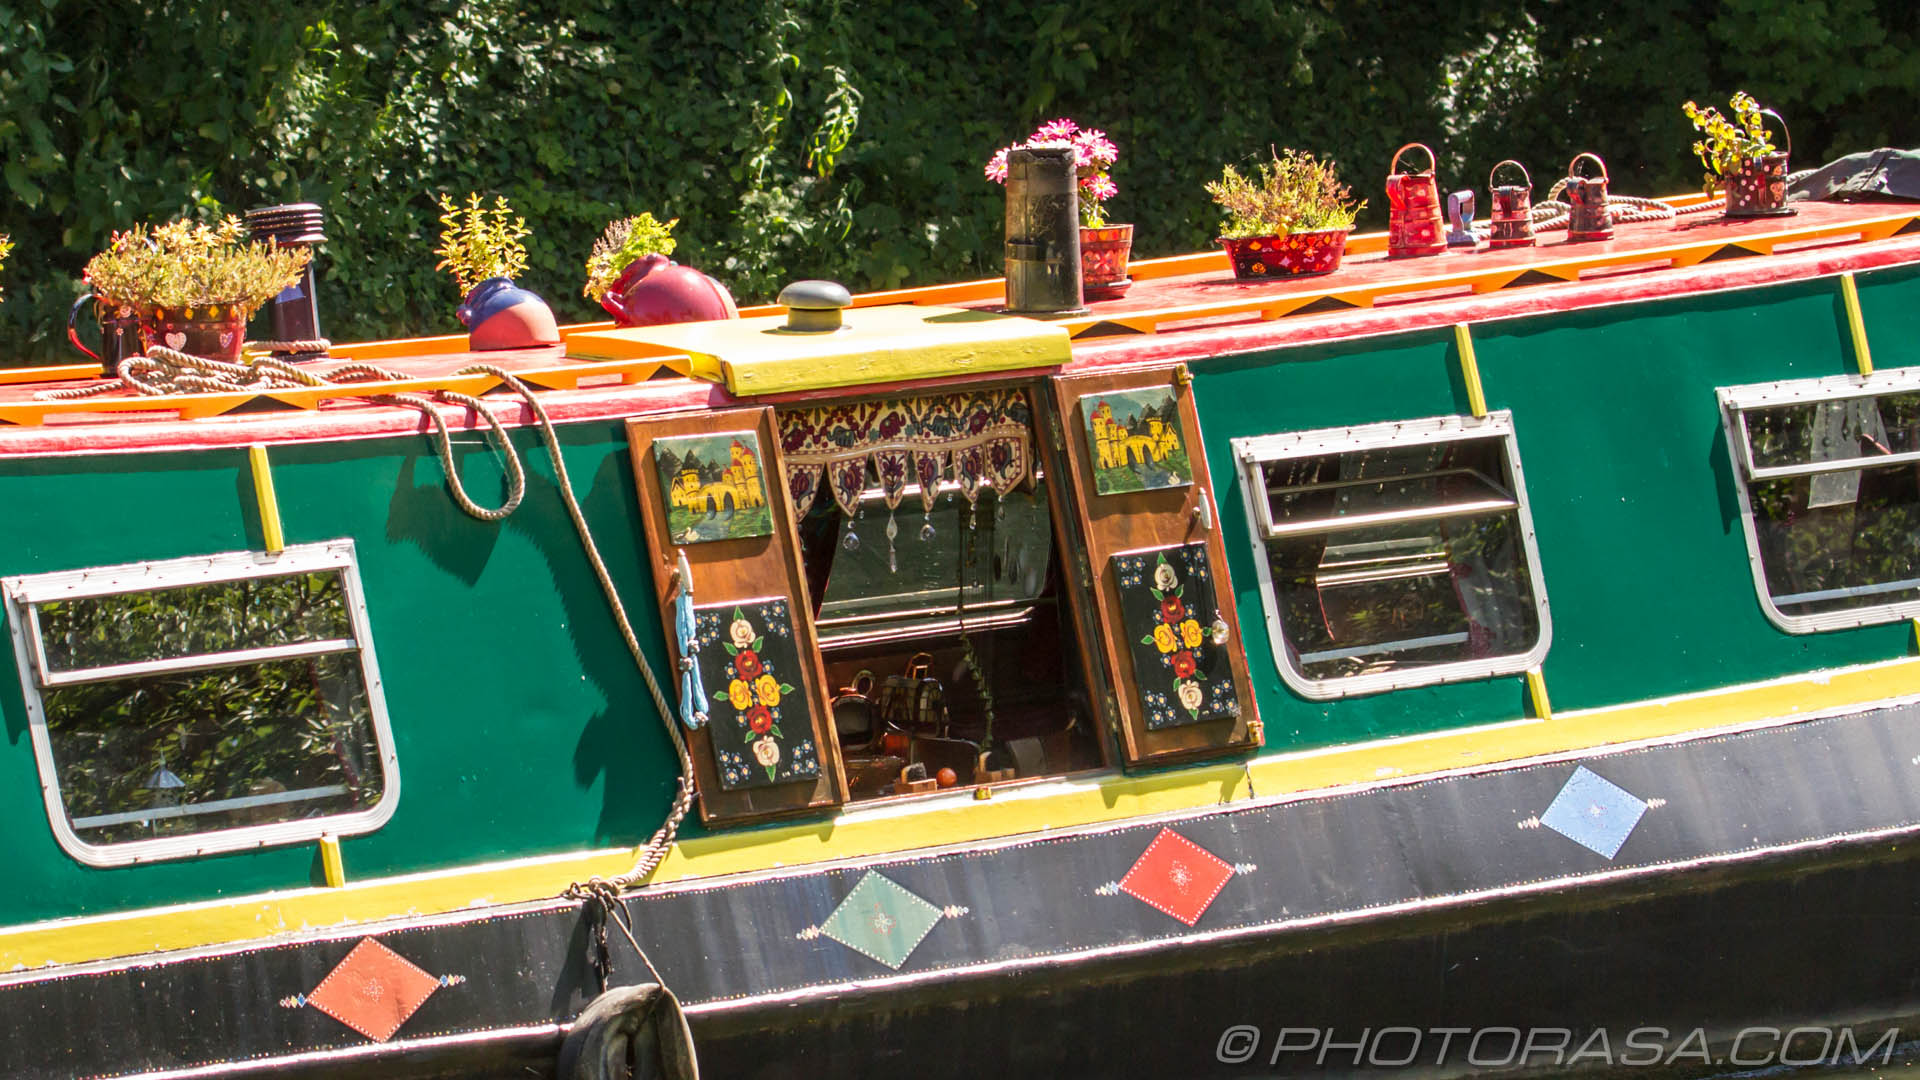 http://photorasa.com/places/maidstone/attachment/colourful-river-barge/